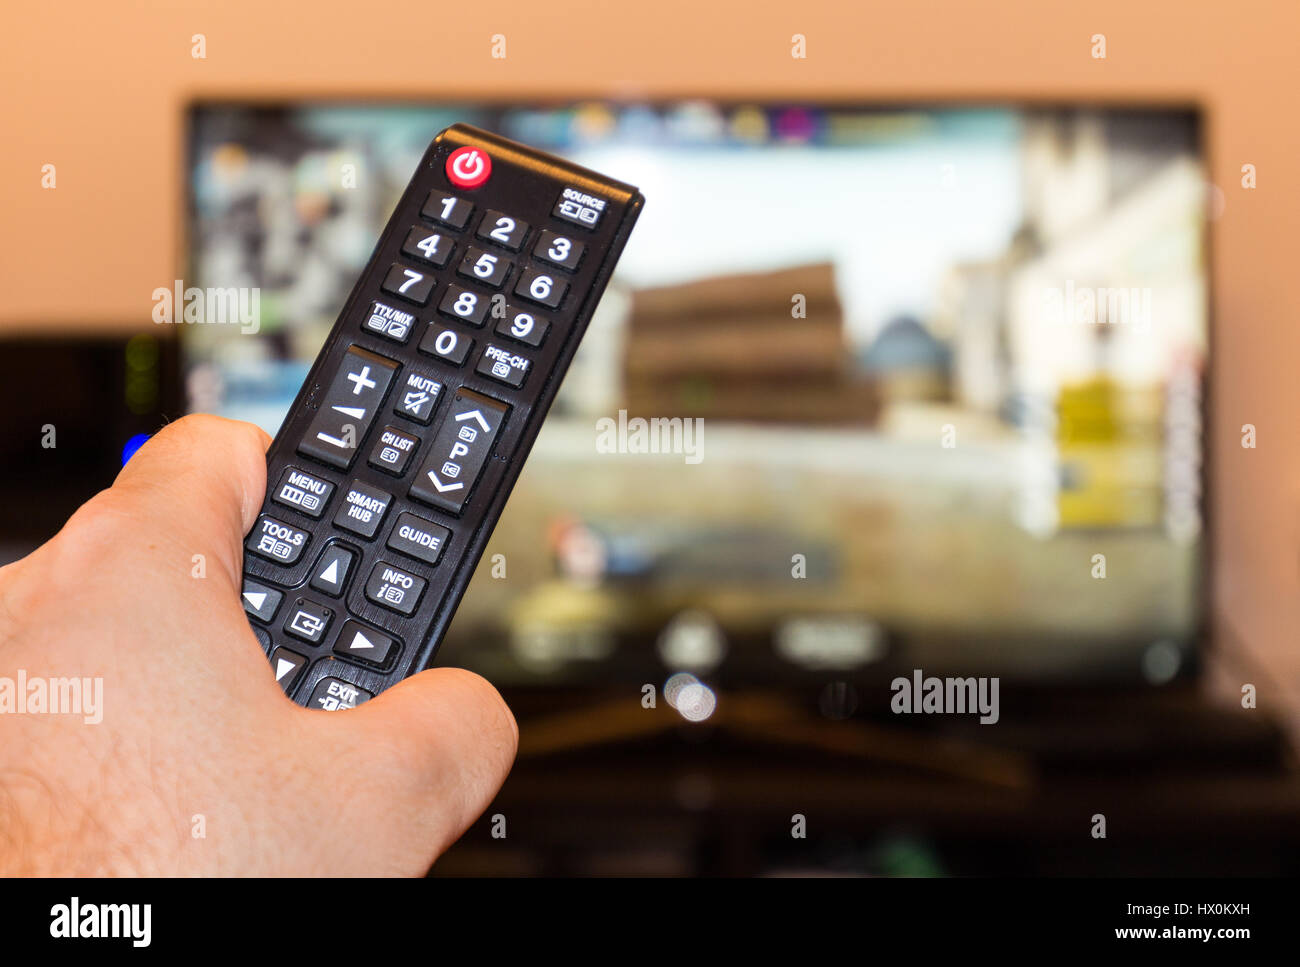 Counter-strike professional game on tv and remote control Stock Photo